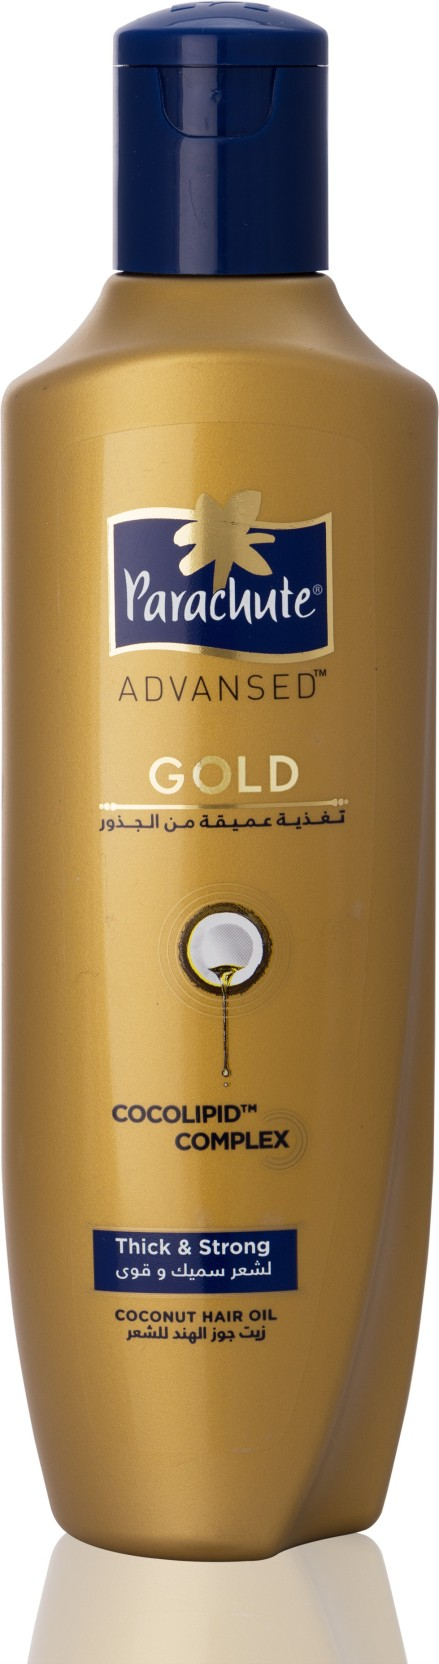 10289bf01aac Parachute Advansed Gold Thick   Strong Hair Oil - Price in India ...